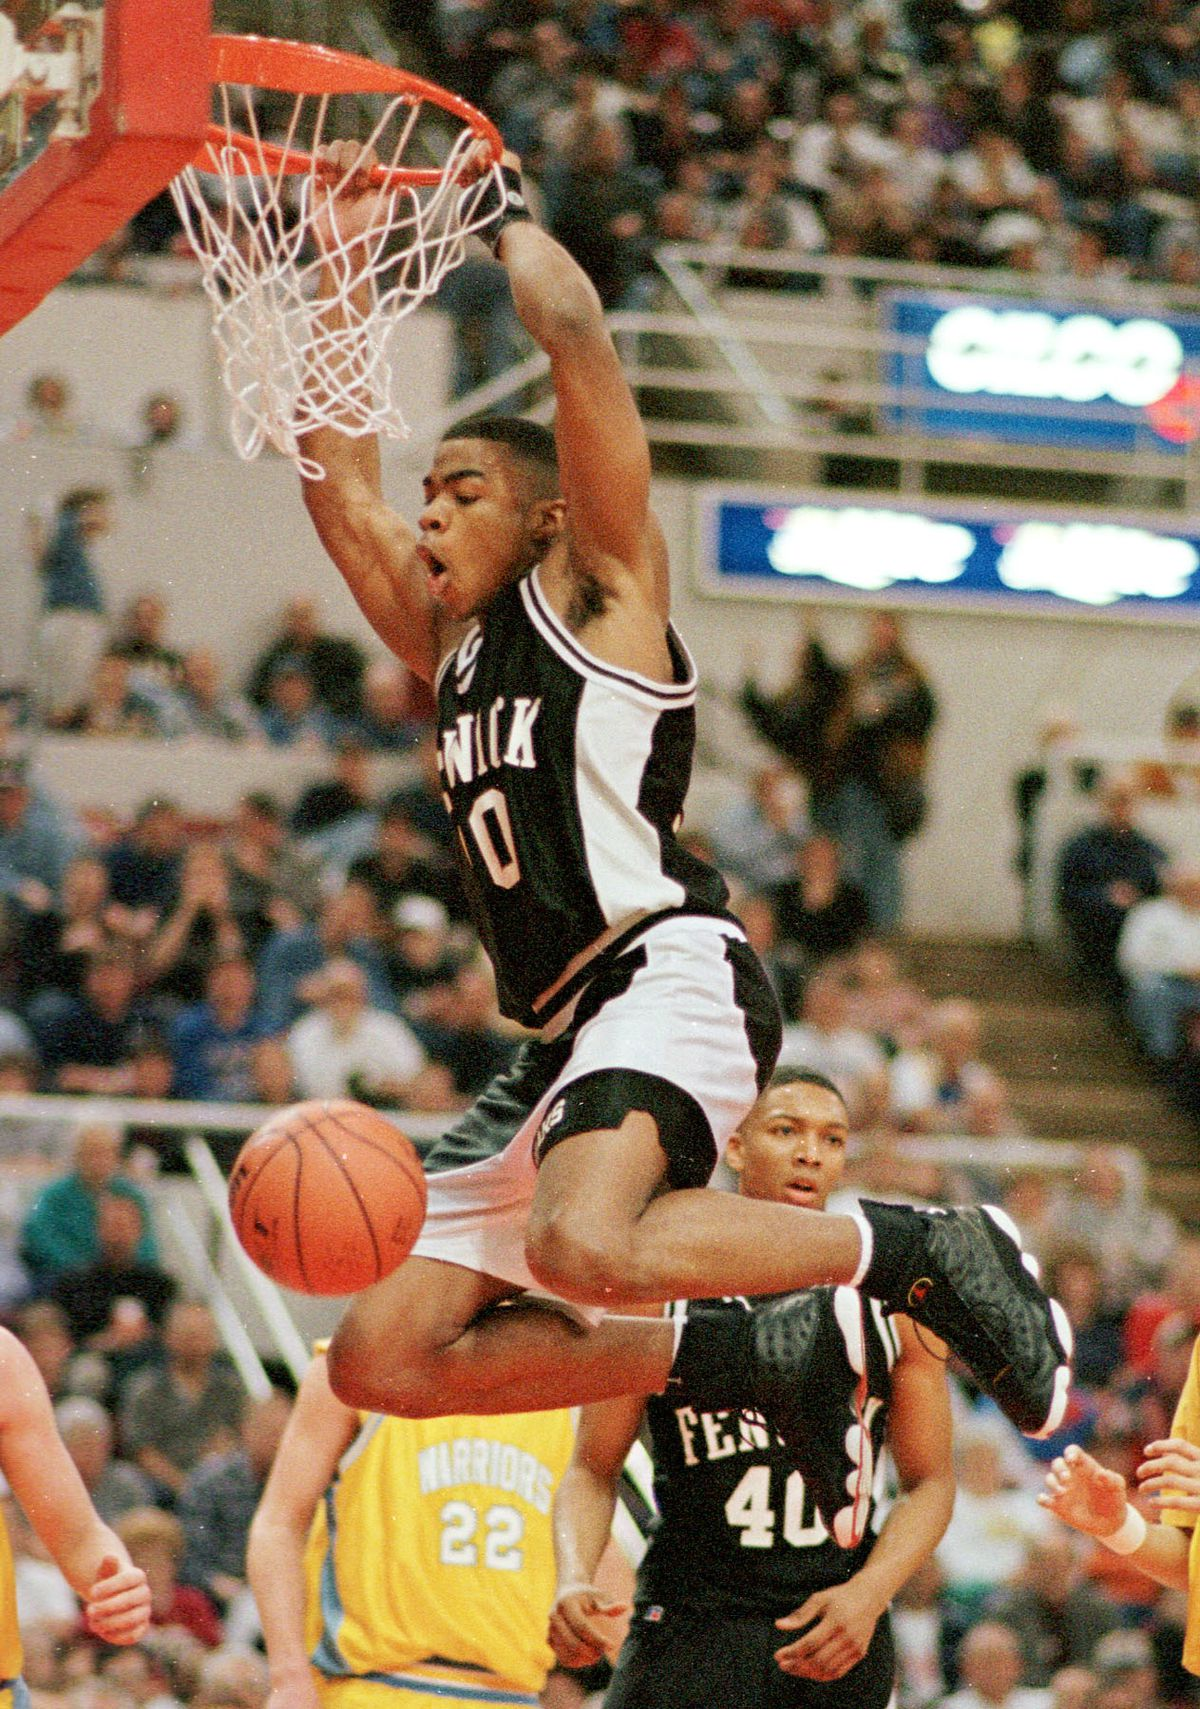 Fenwick's Corey Maggette slam dunks against Maine West in a Class AA Quarterfinal game in Peoria.